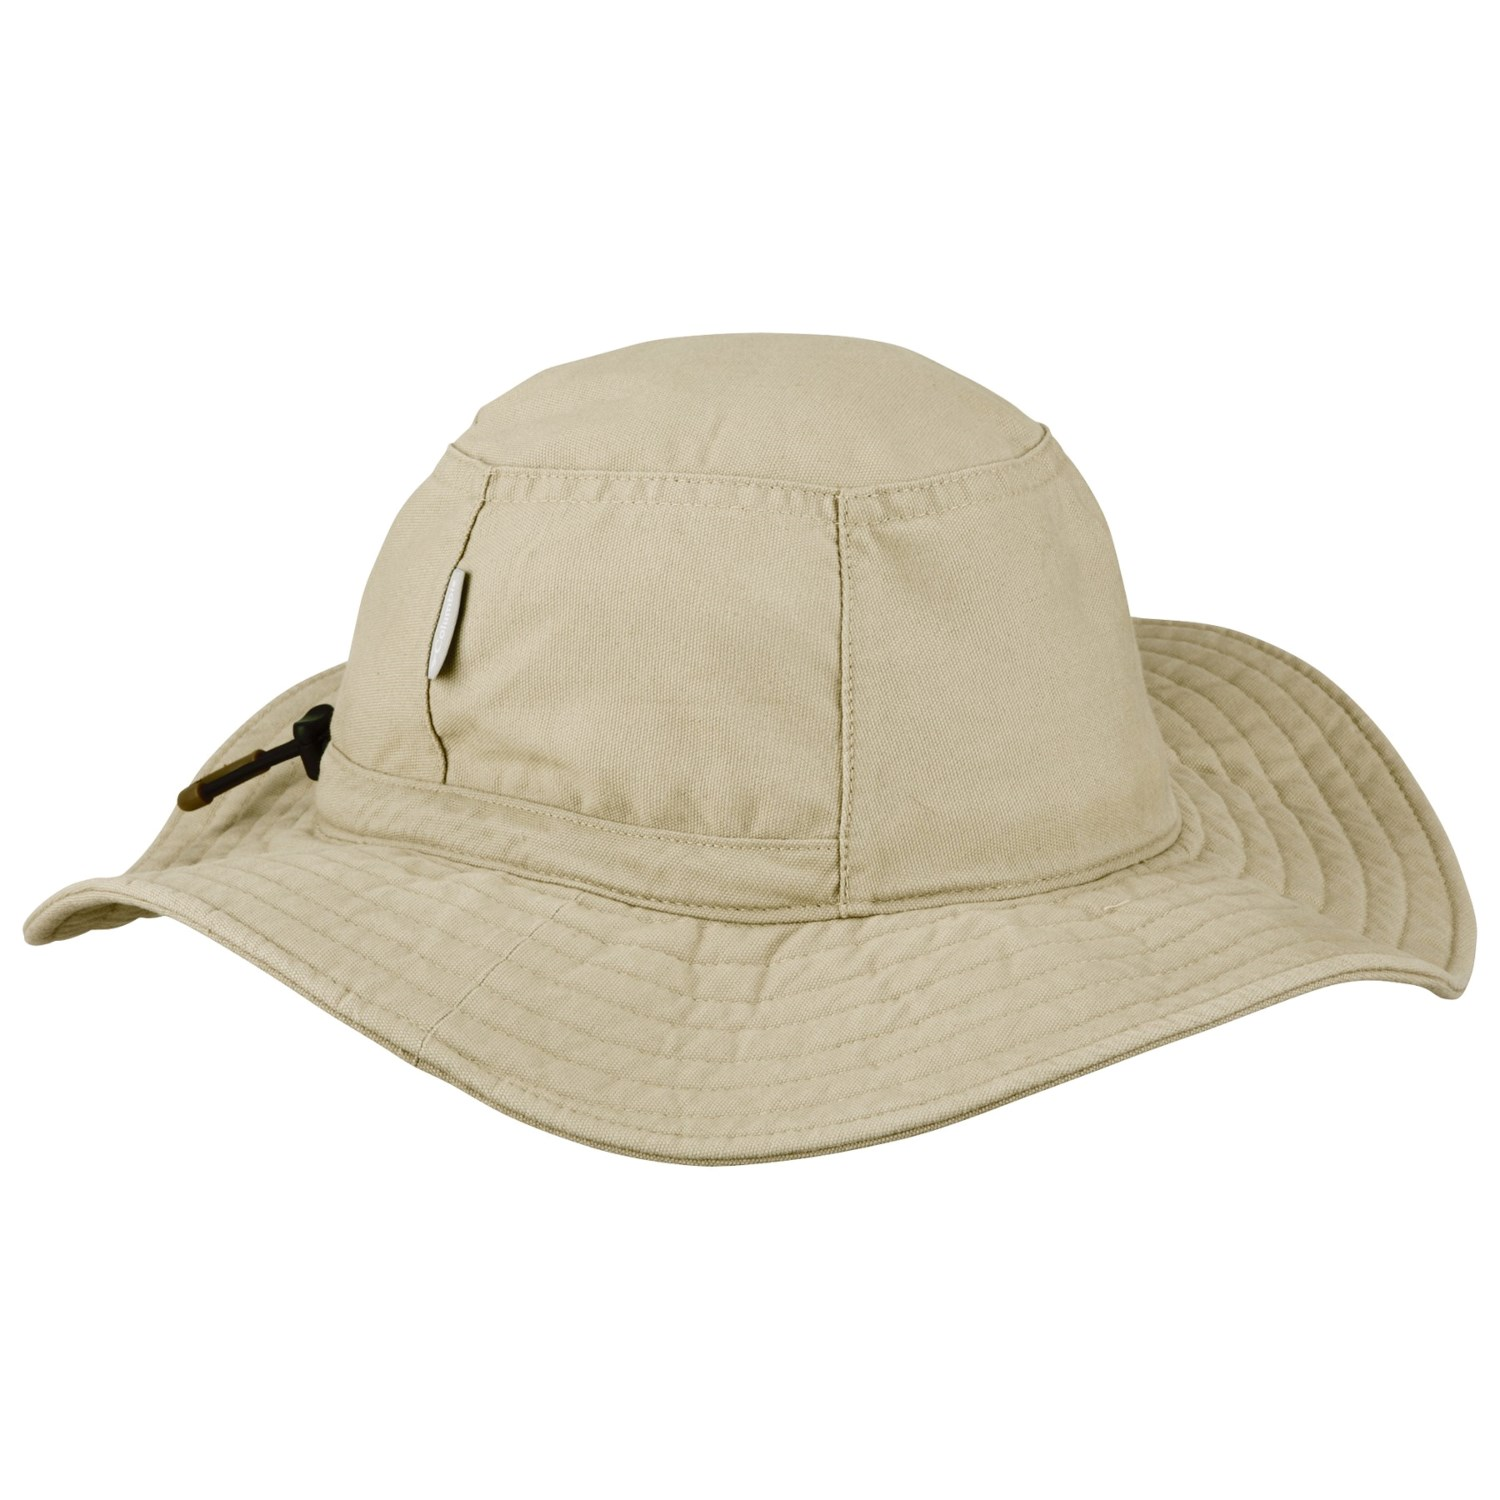 Columbia Booney Hat: Columbia Sportswear Bug Me Not Booney Hat (For Men) 4444V